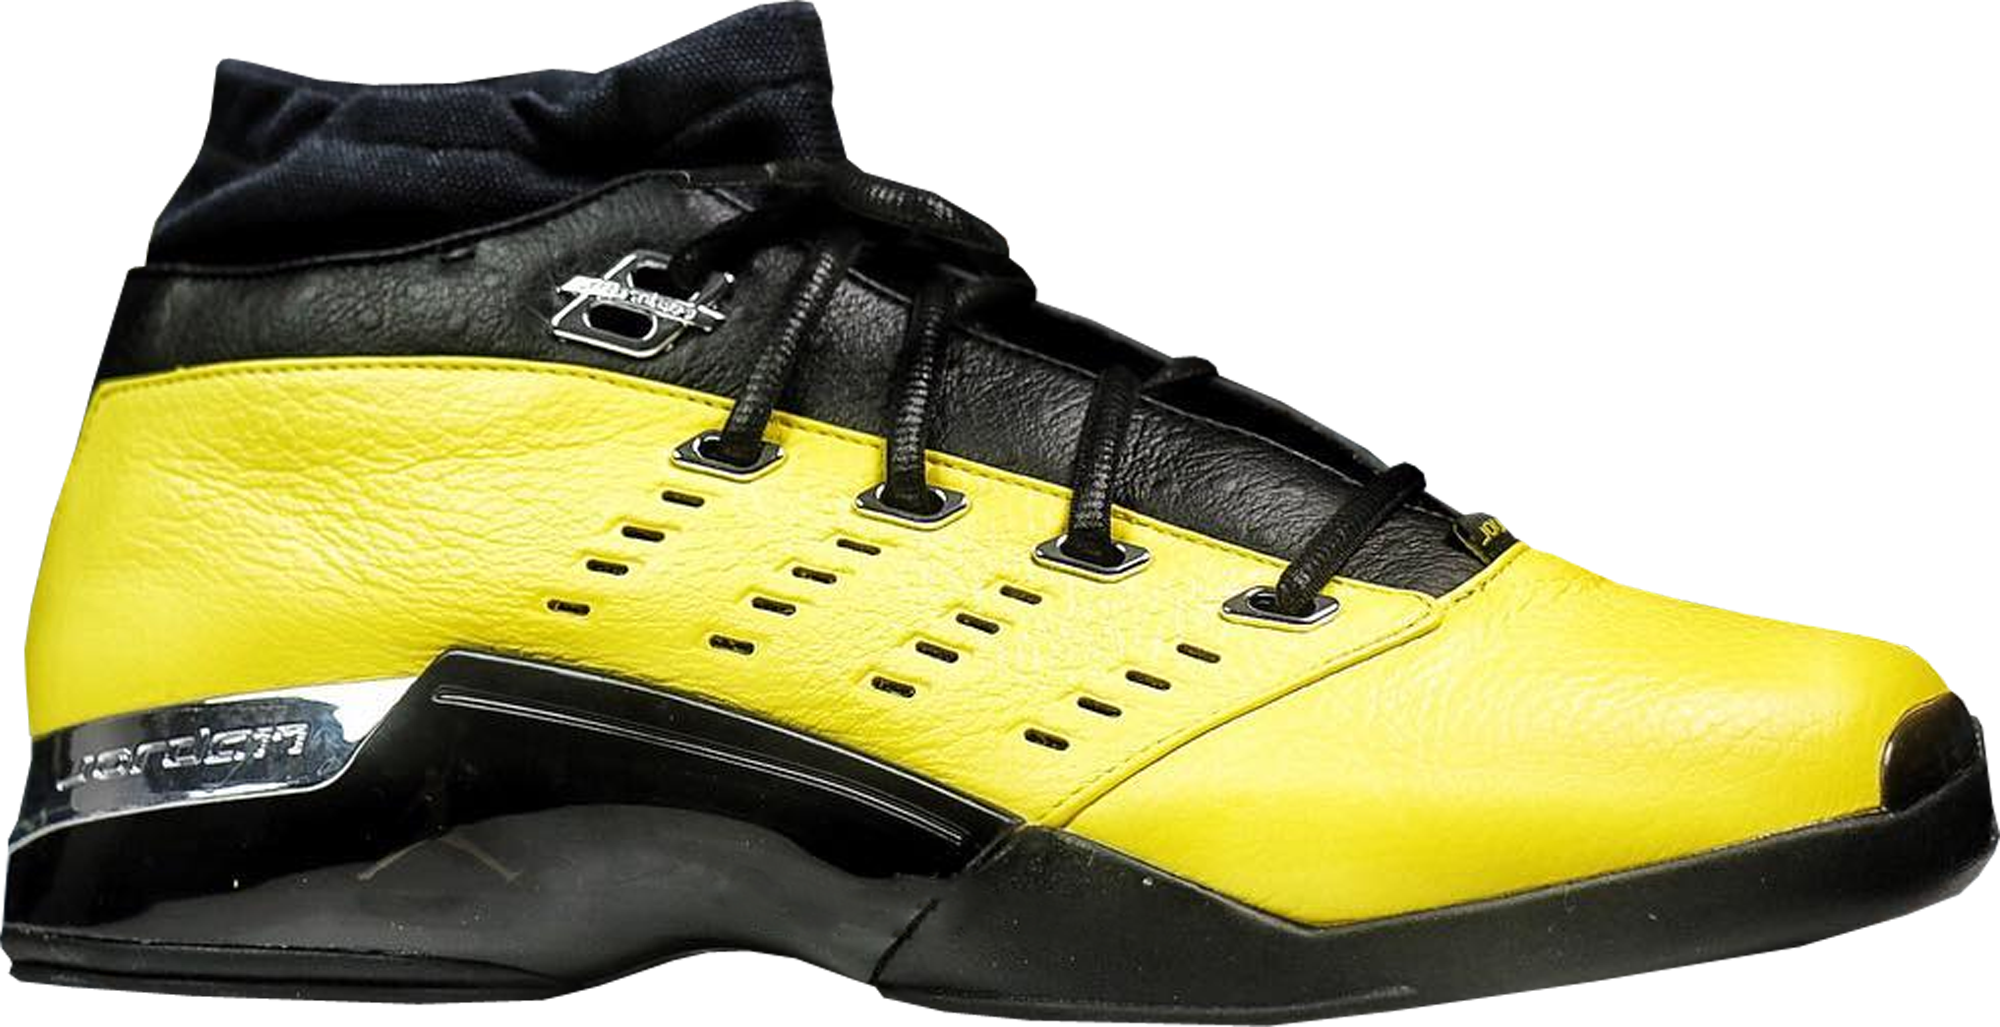 Jordan 17 Retro Low SoleFly Alternate Lightning